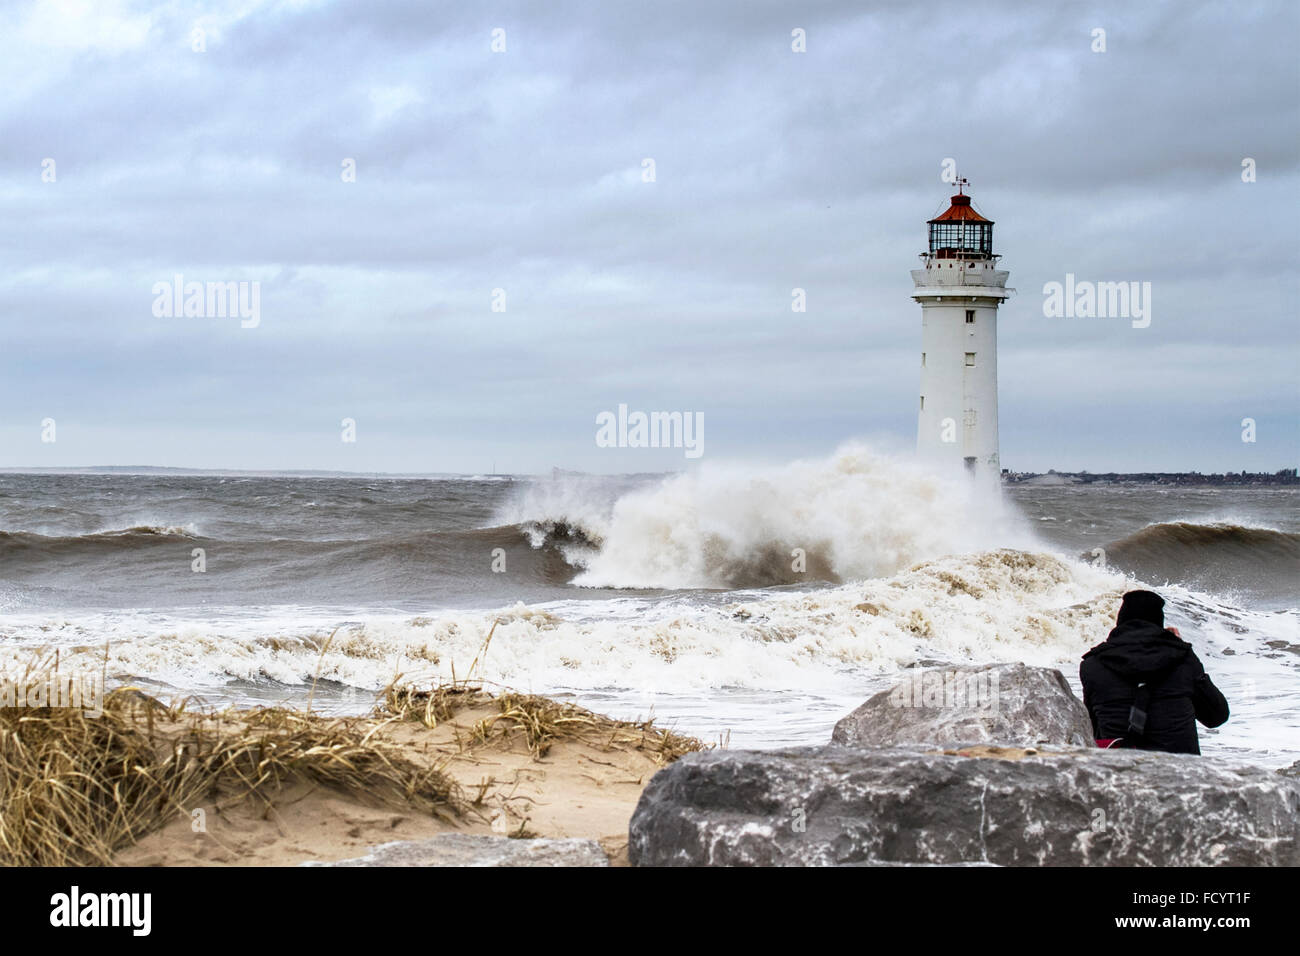 New Brighton, Wallasey, Liverpool, UK. 26th January 2016. UK weather. High waves crash against the sea defences - Stock Image